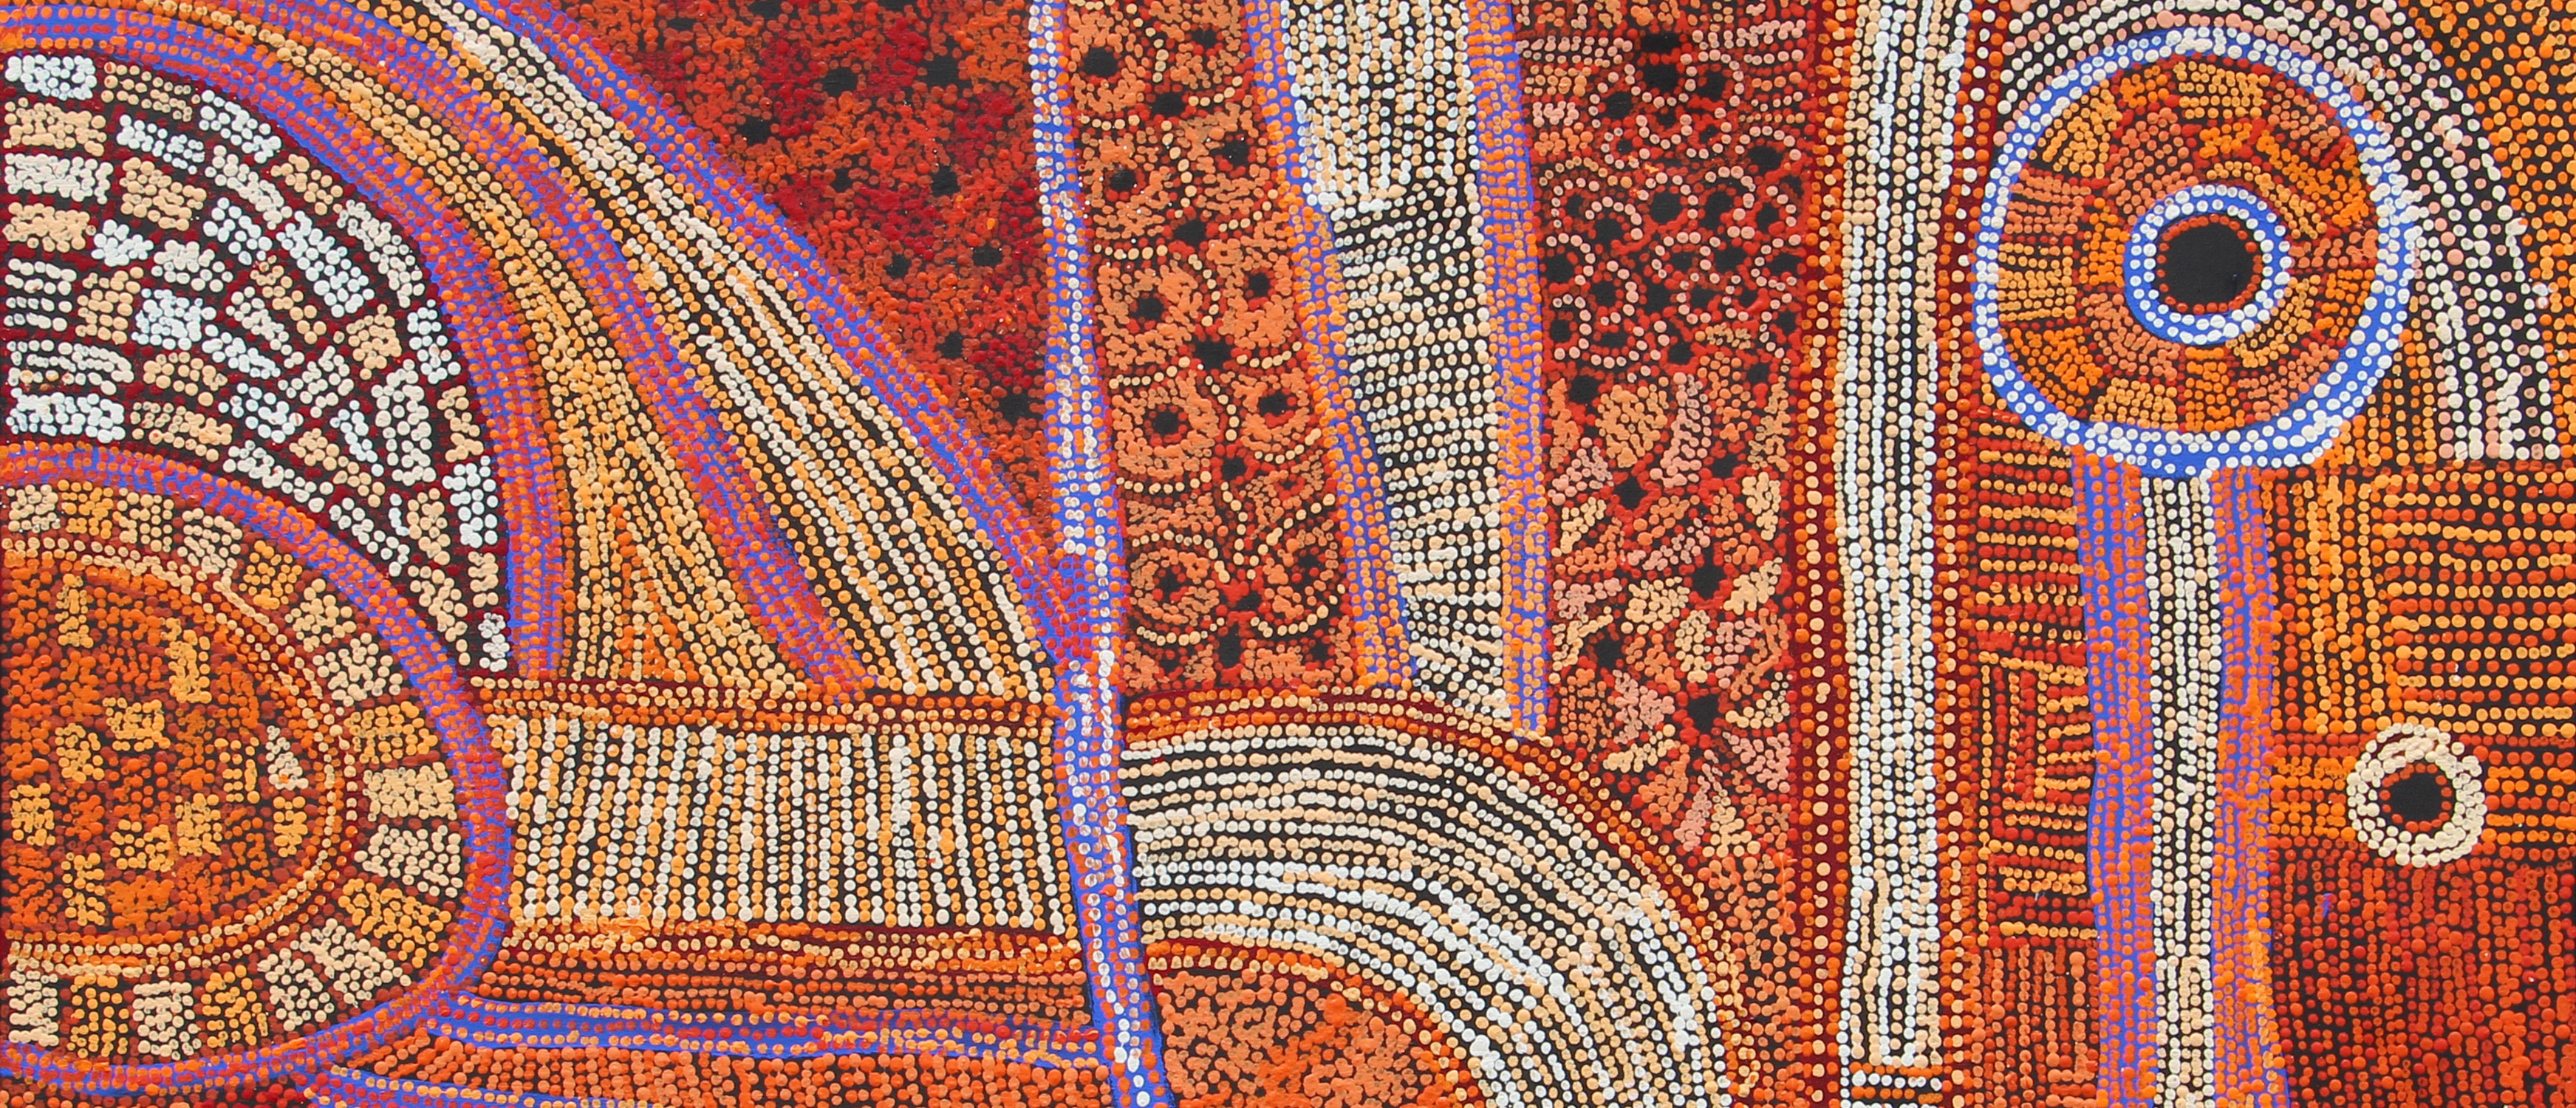 Betty Chimney & Raylene Walatinna, Nganampa Ngura (Our Country) (detail) (2018), Acrylic on Linen, 122 x 152cm.